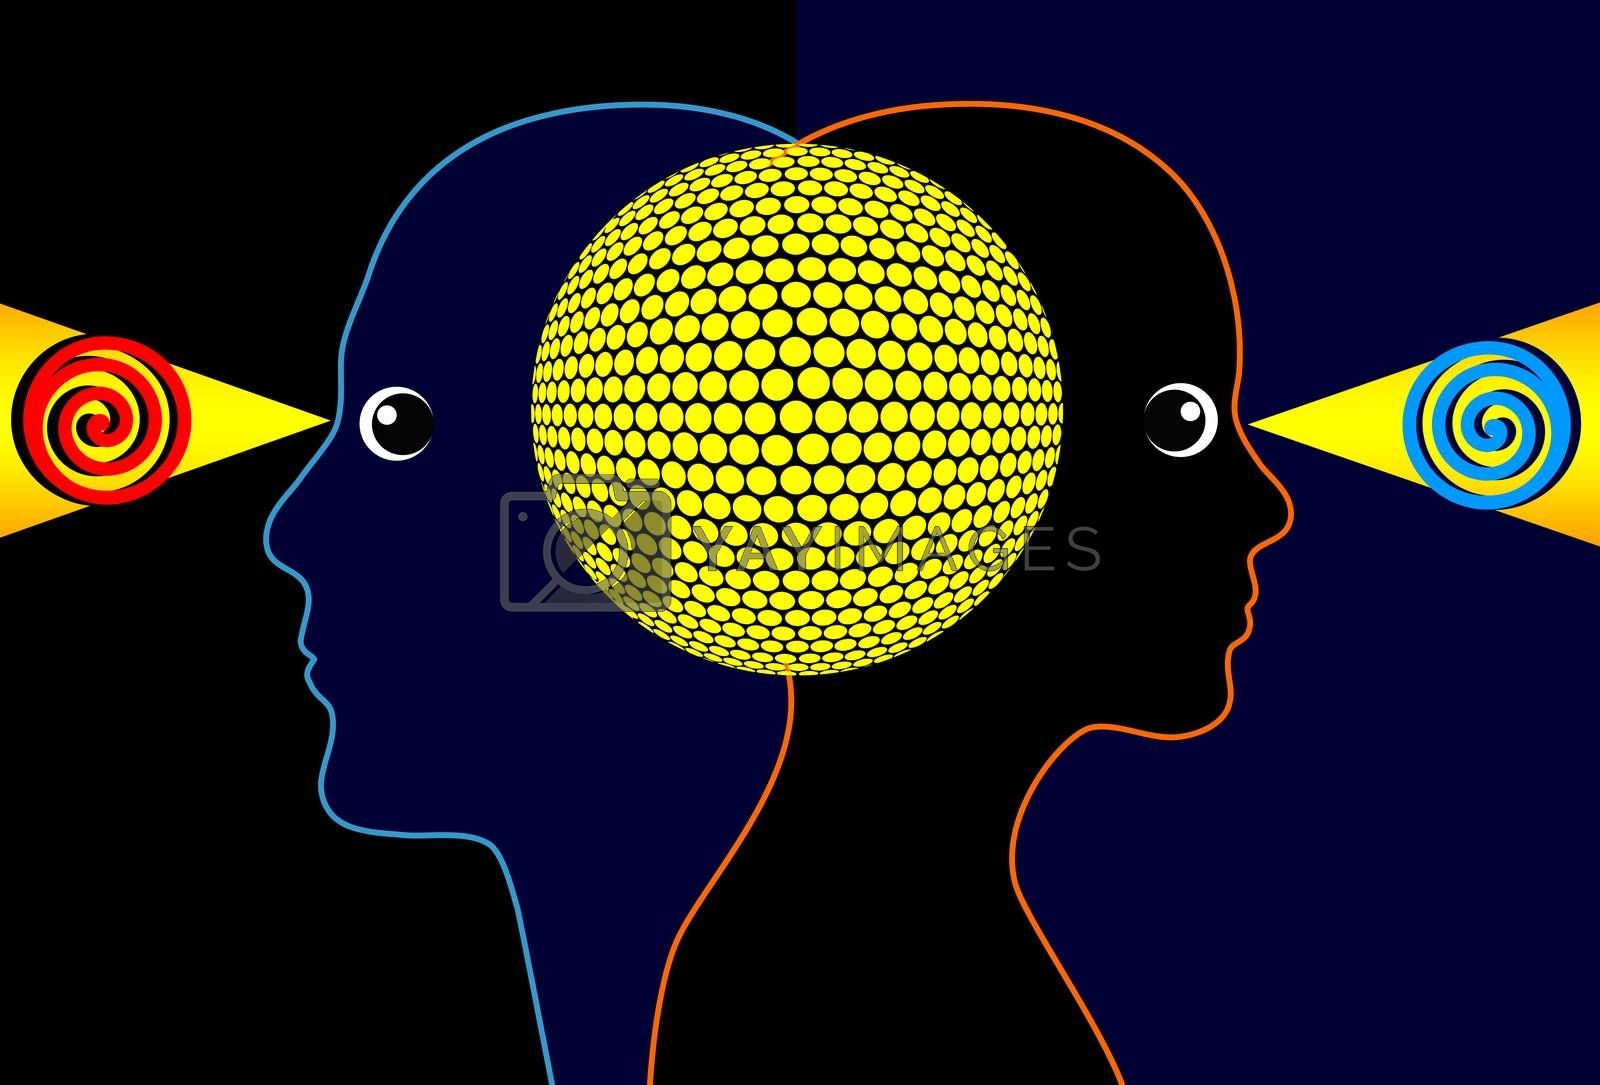 Concept sign of a mind to mind communication between two people